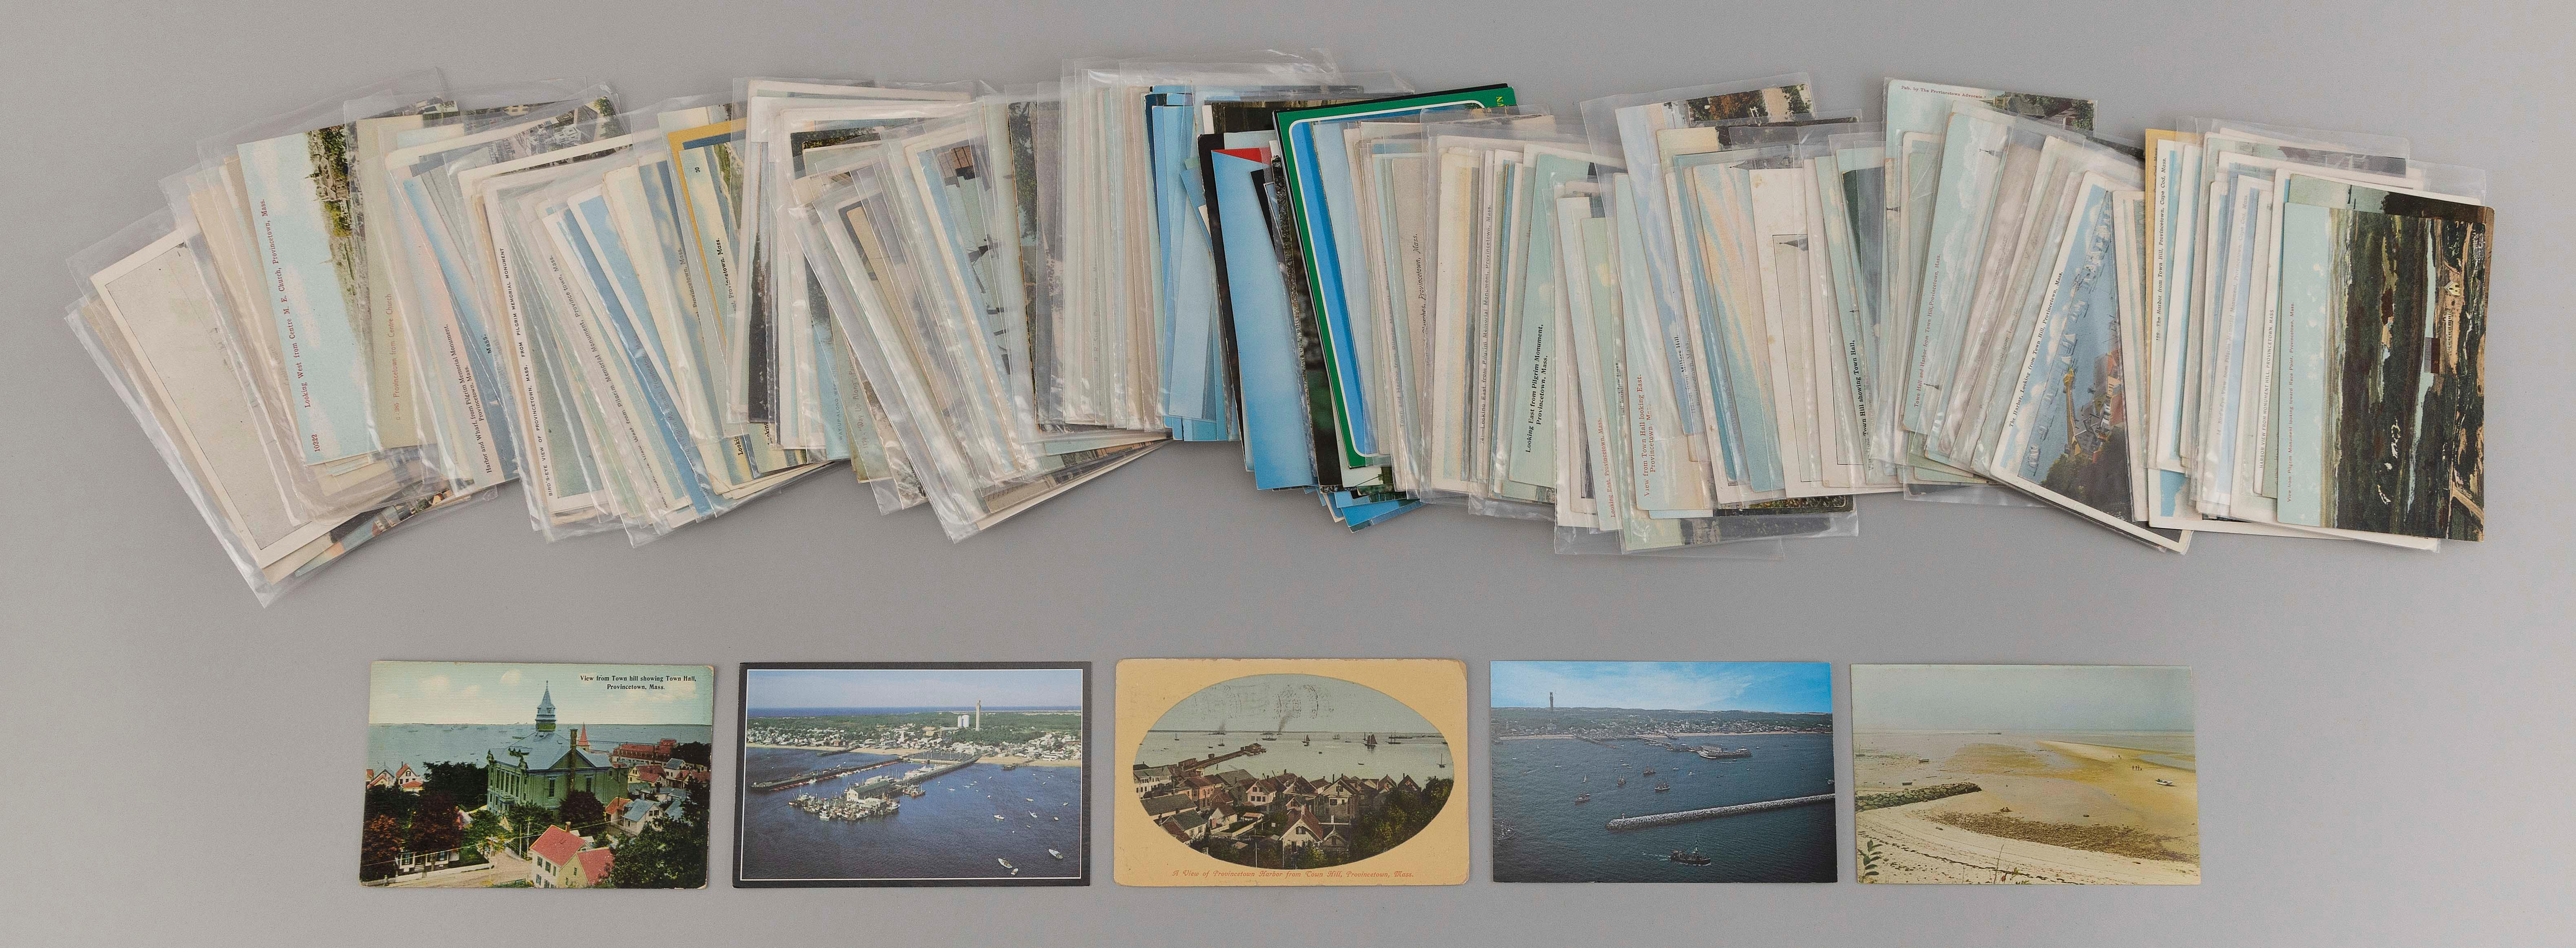 (CAPE COD: PROVINCETOWN) 222 POSTCARDS Includes 37 transportation themes, 11 railroad and 174 views from the air. Real photo: railro...